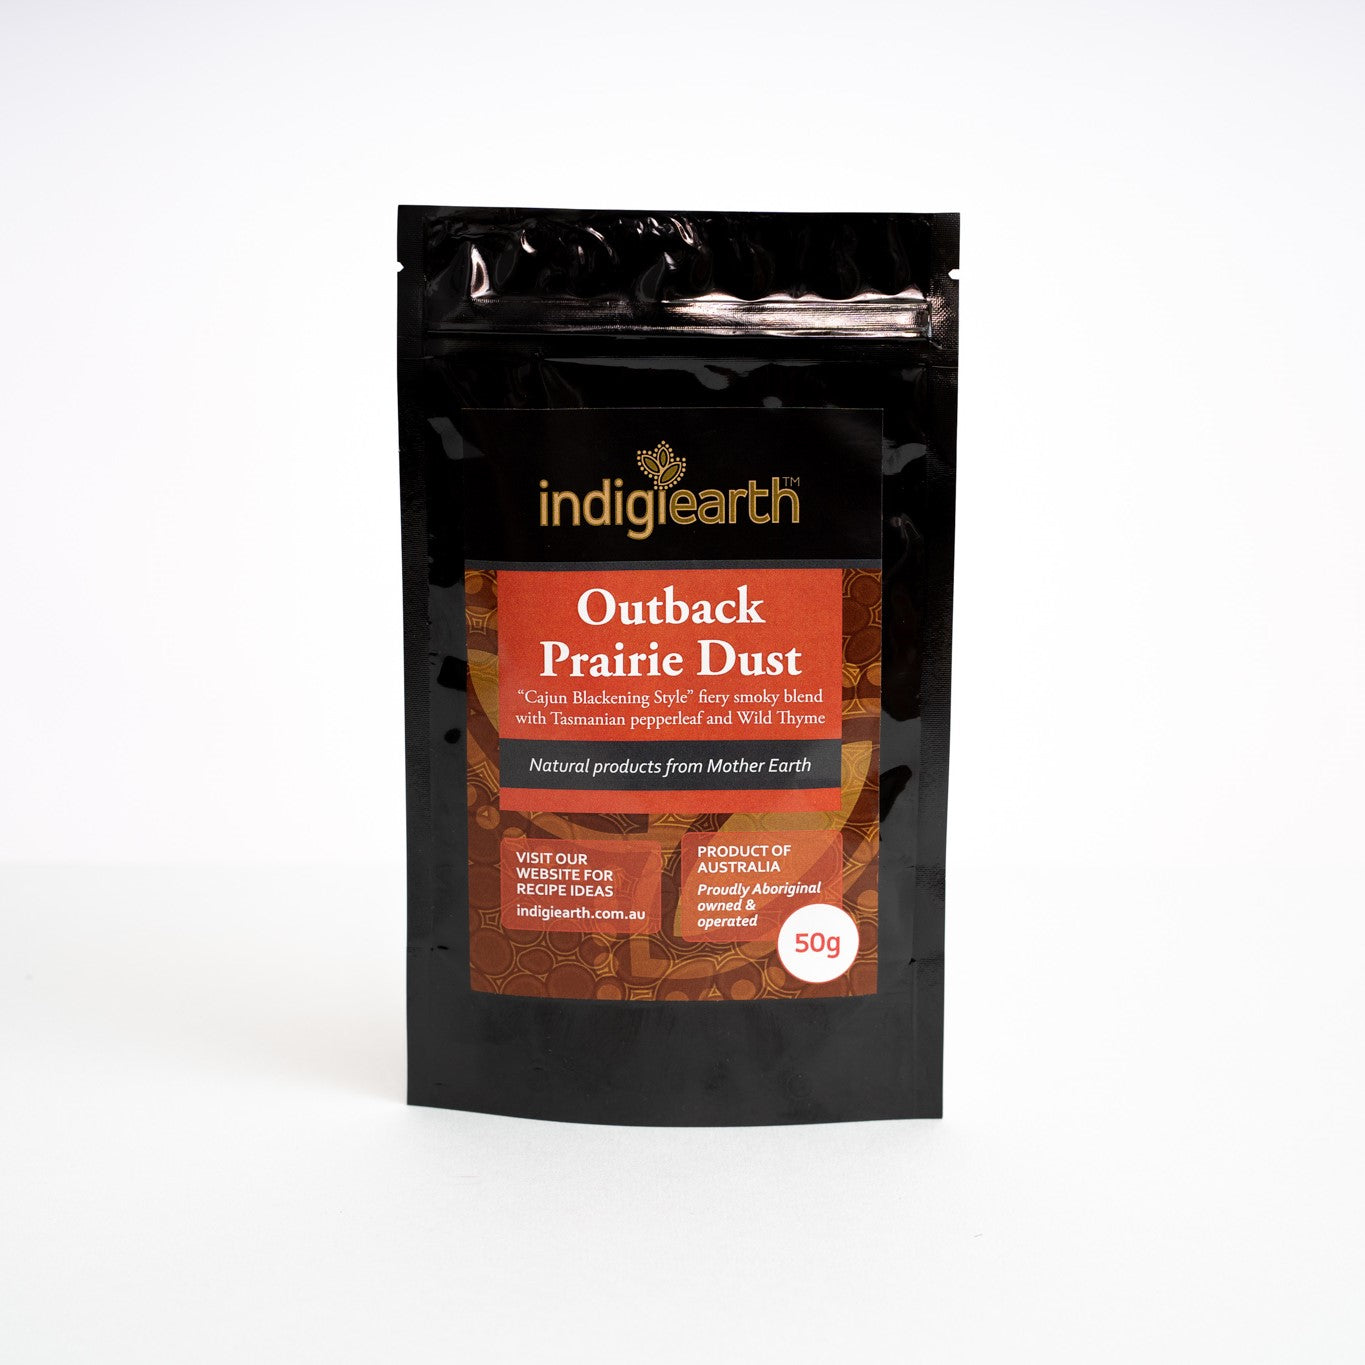 Outback Prairie Dust (Seasoning, Dukkah)-Indigiearth-Aggie Global Australia